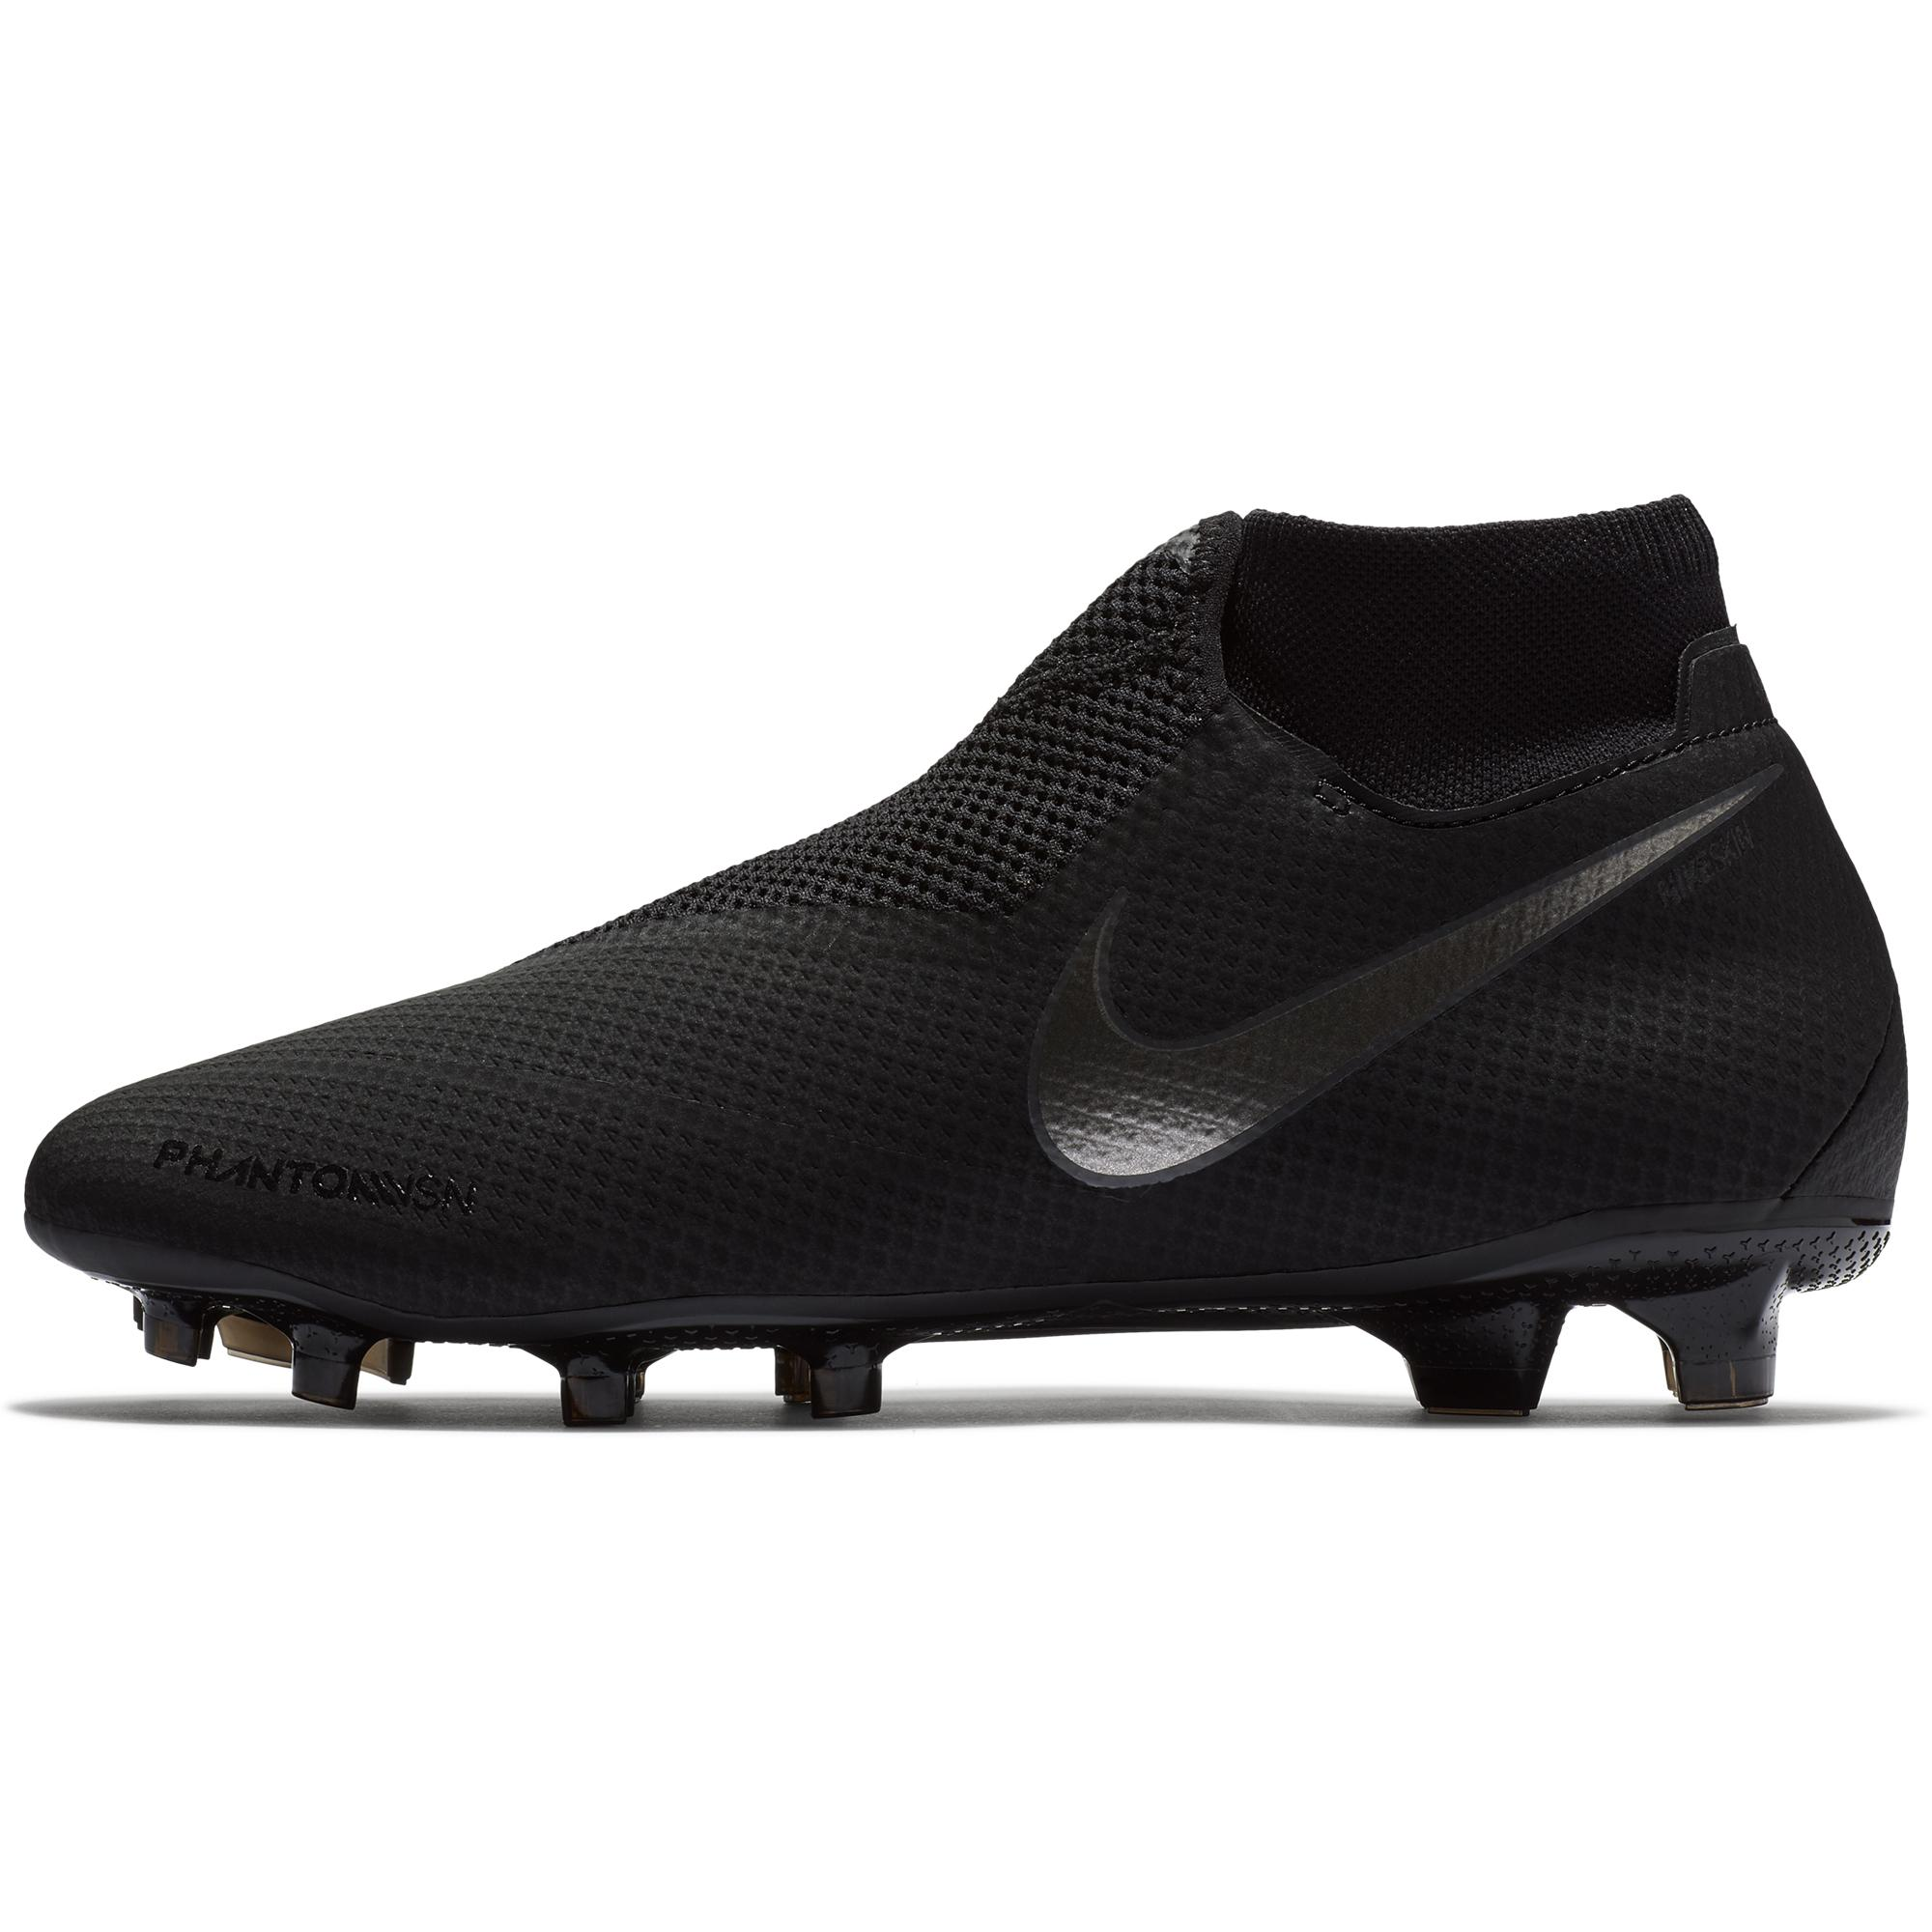 ceb9cedaeb9e Nike Football Shoes Phantom Vsn Pro Df Fg Black - Tifoshop.com